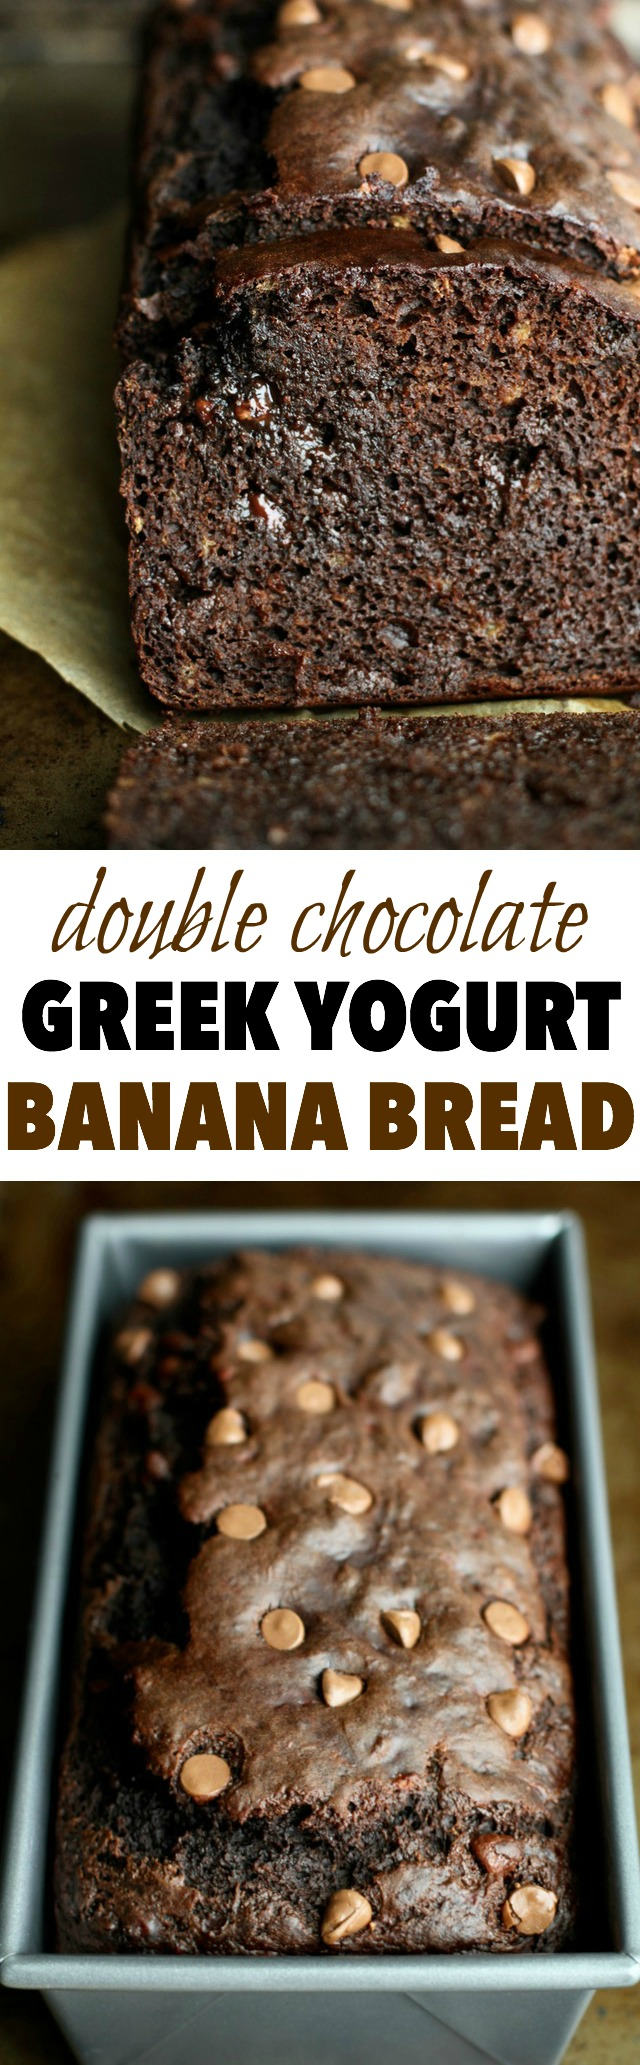 This Double Chocolate Greek Yogurt Banana Bread is LOADED with ...